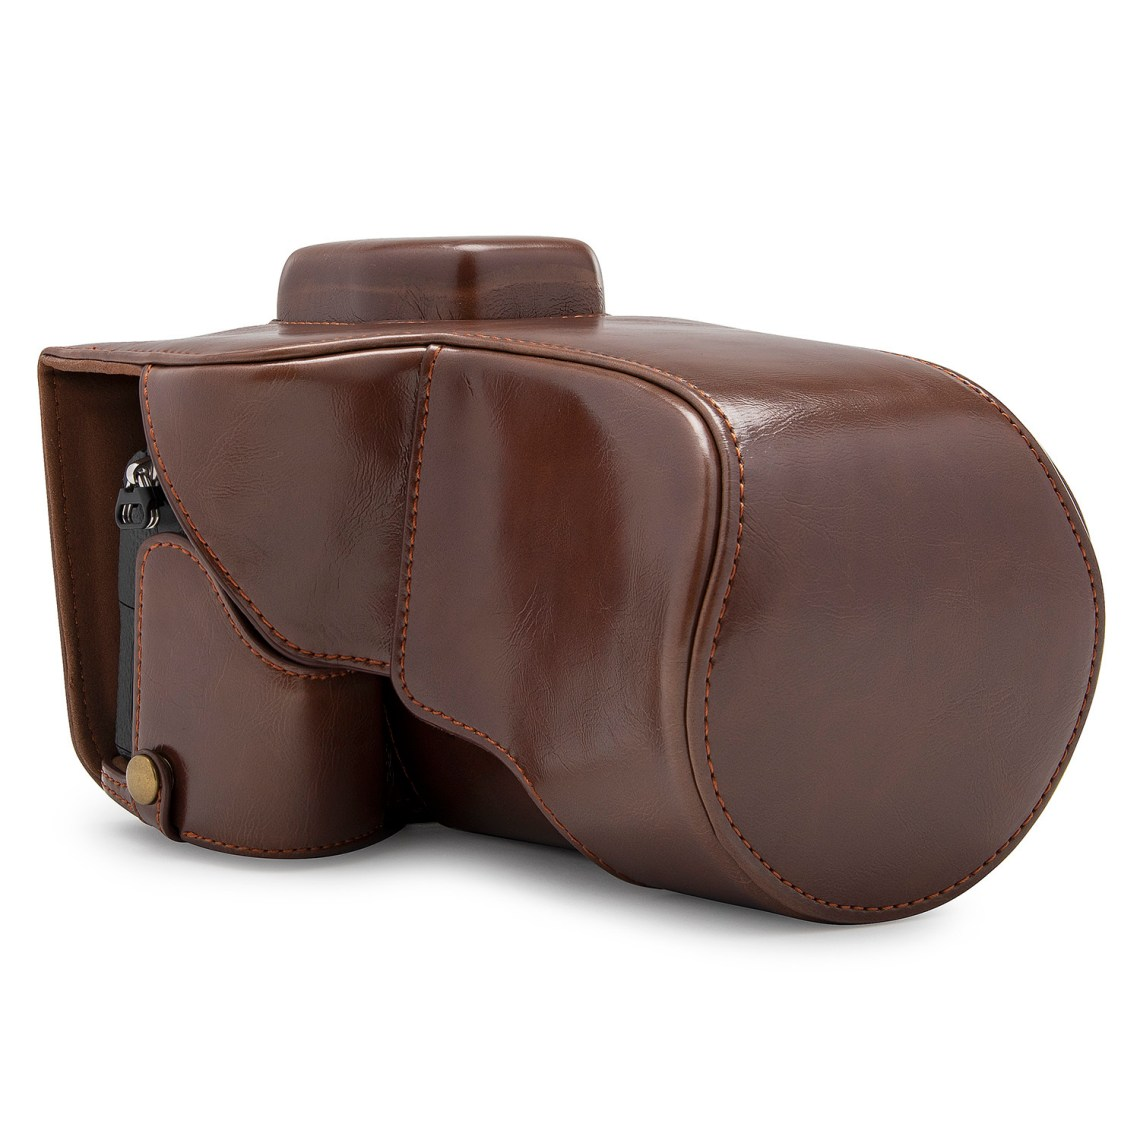 This Sony leather camera case is a handsome\, convenient case for your Sony A7 camera. It's a full case that can be unbuttoned and turned into a half-case\, so you'll be able to take pictures with the case on.The stylish case is made of rugged leather\, and it will protect your camera from bruising\, scratches\, and dust. You can even mount the camera to a standard tripod and remove the battery without removing the camera from its case.